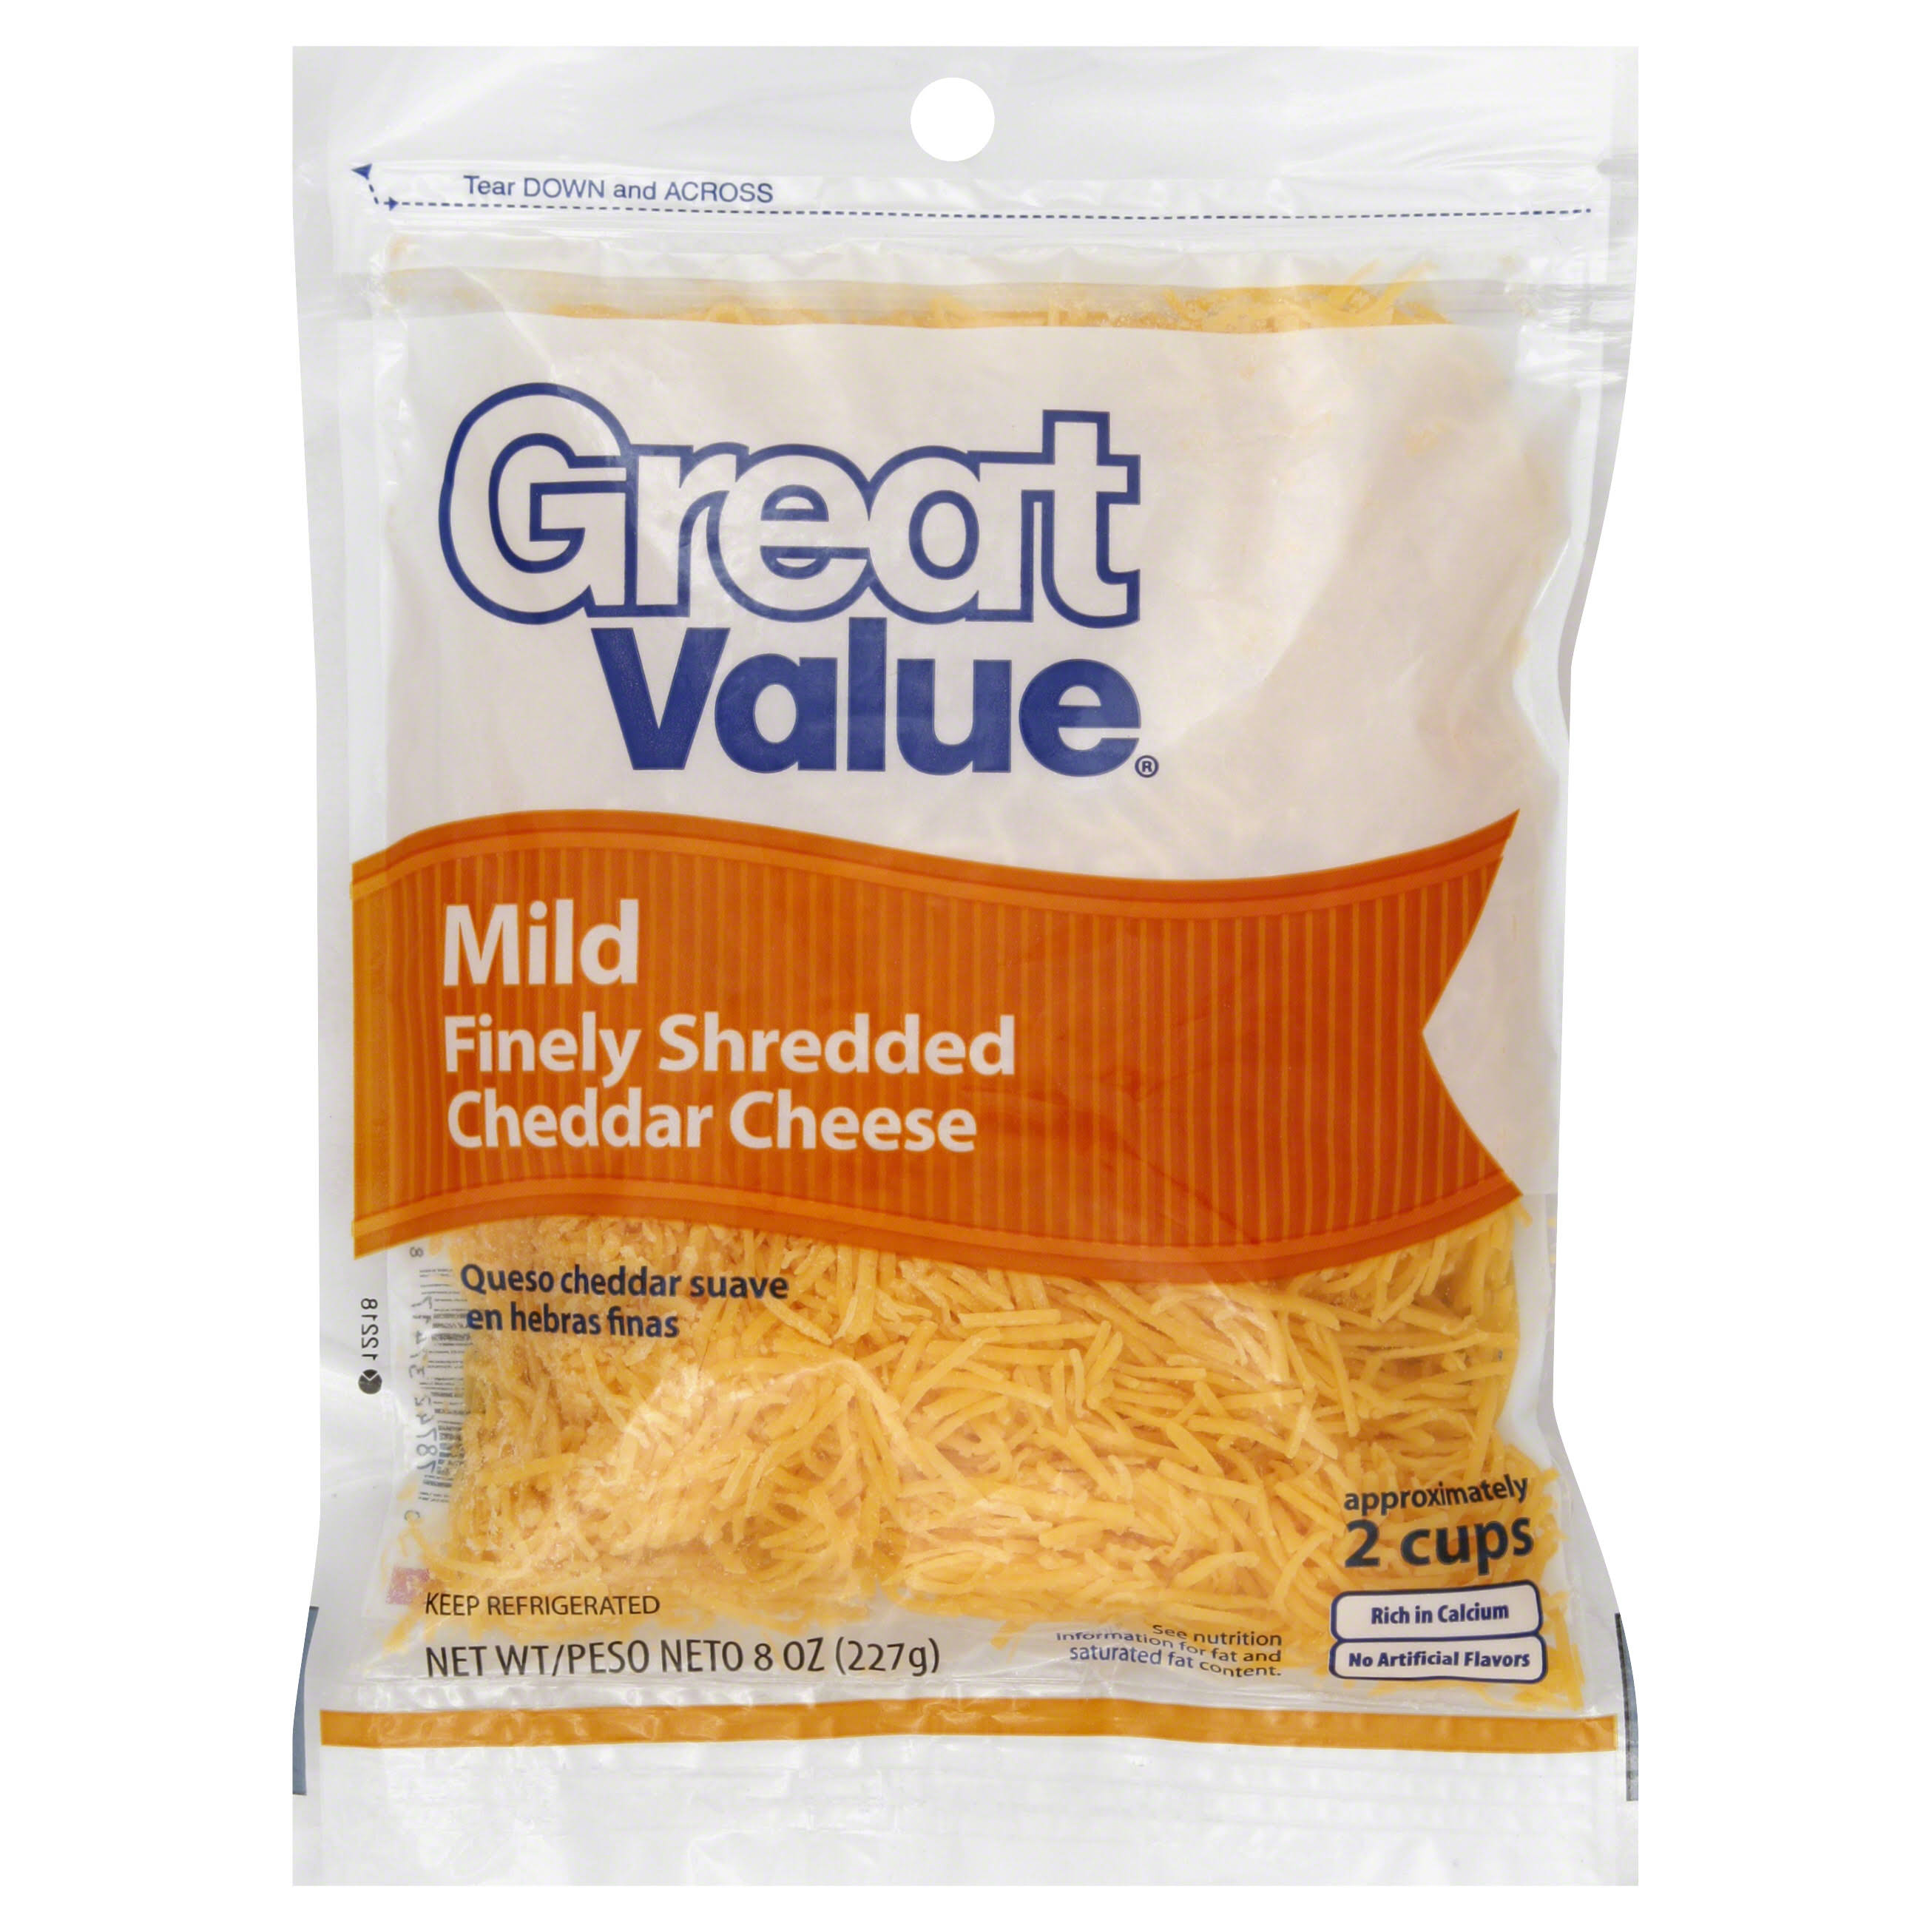 Great Value Cheese, Finely Shredded, Mild, Cheddar - 8 oz